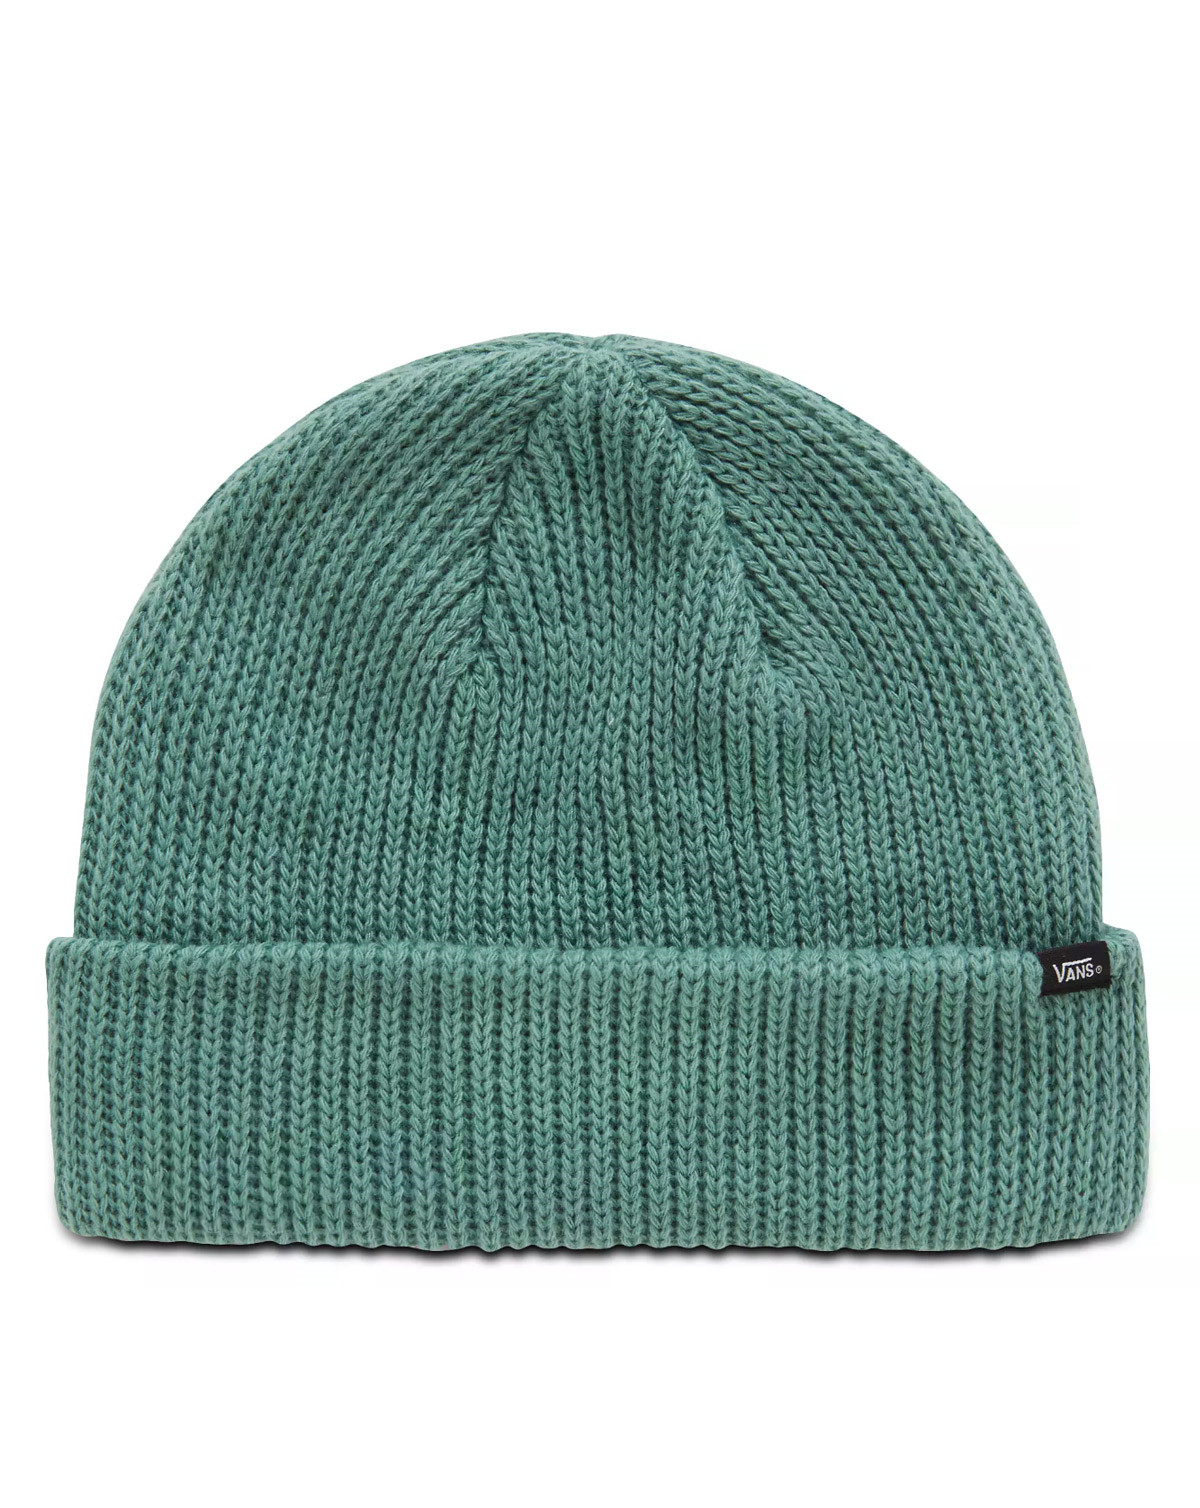 Image of   VANS Core Basics Beanie (Grøn, One Size)